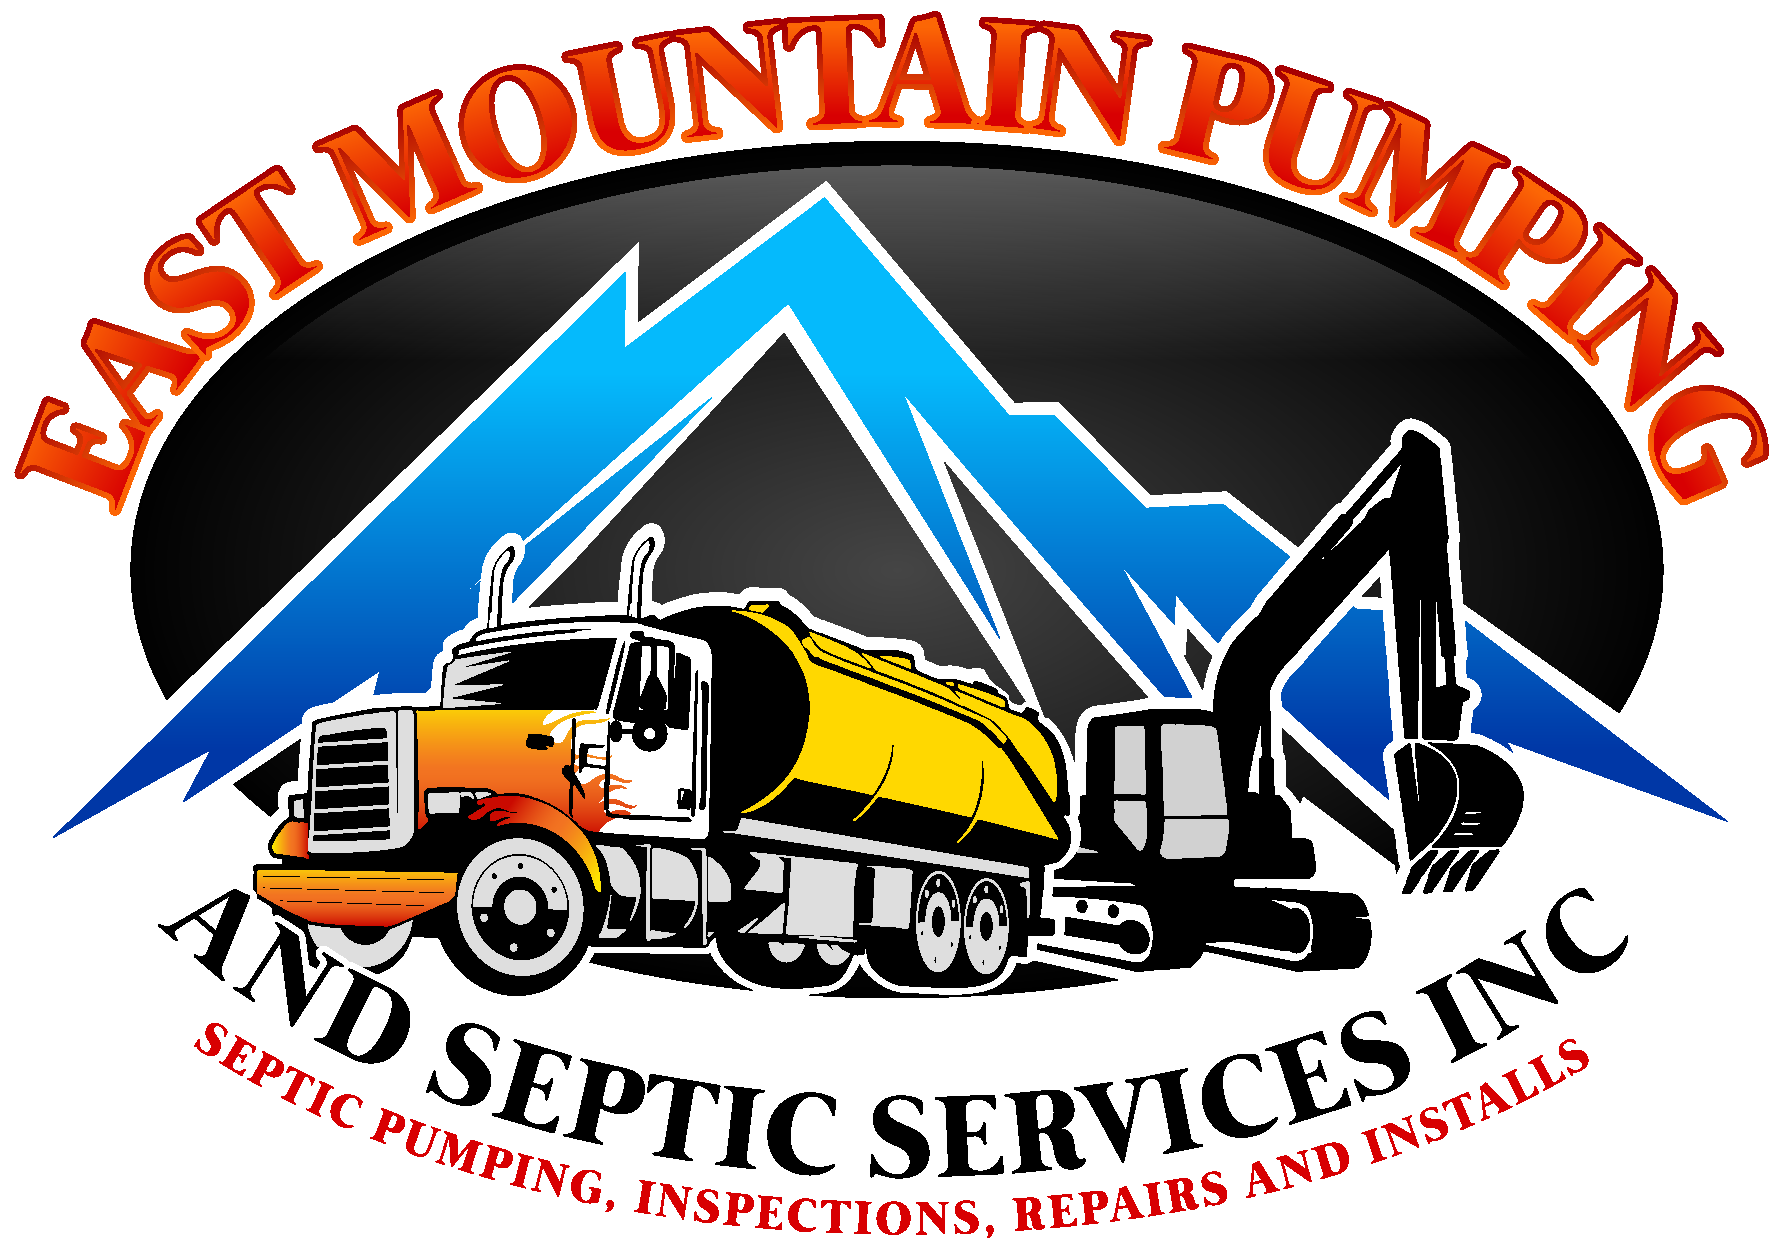 Warrior clipart edgewood. Welcome east mountain pumping